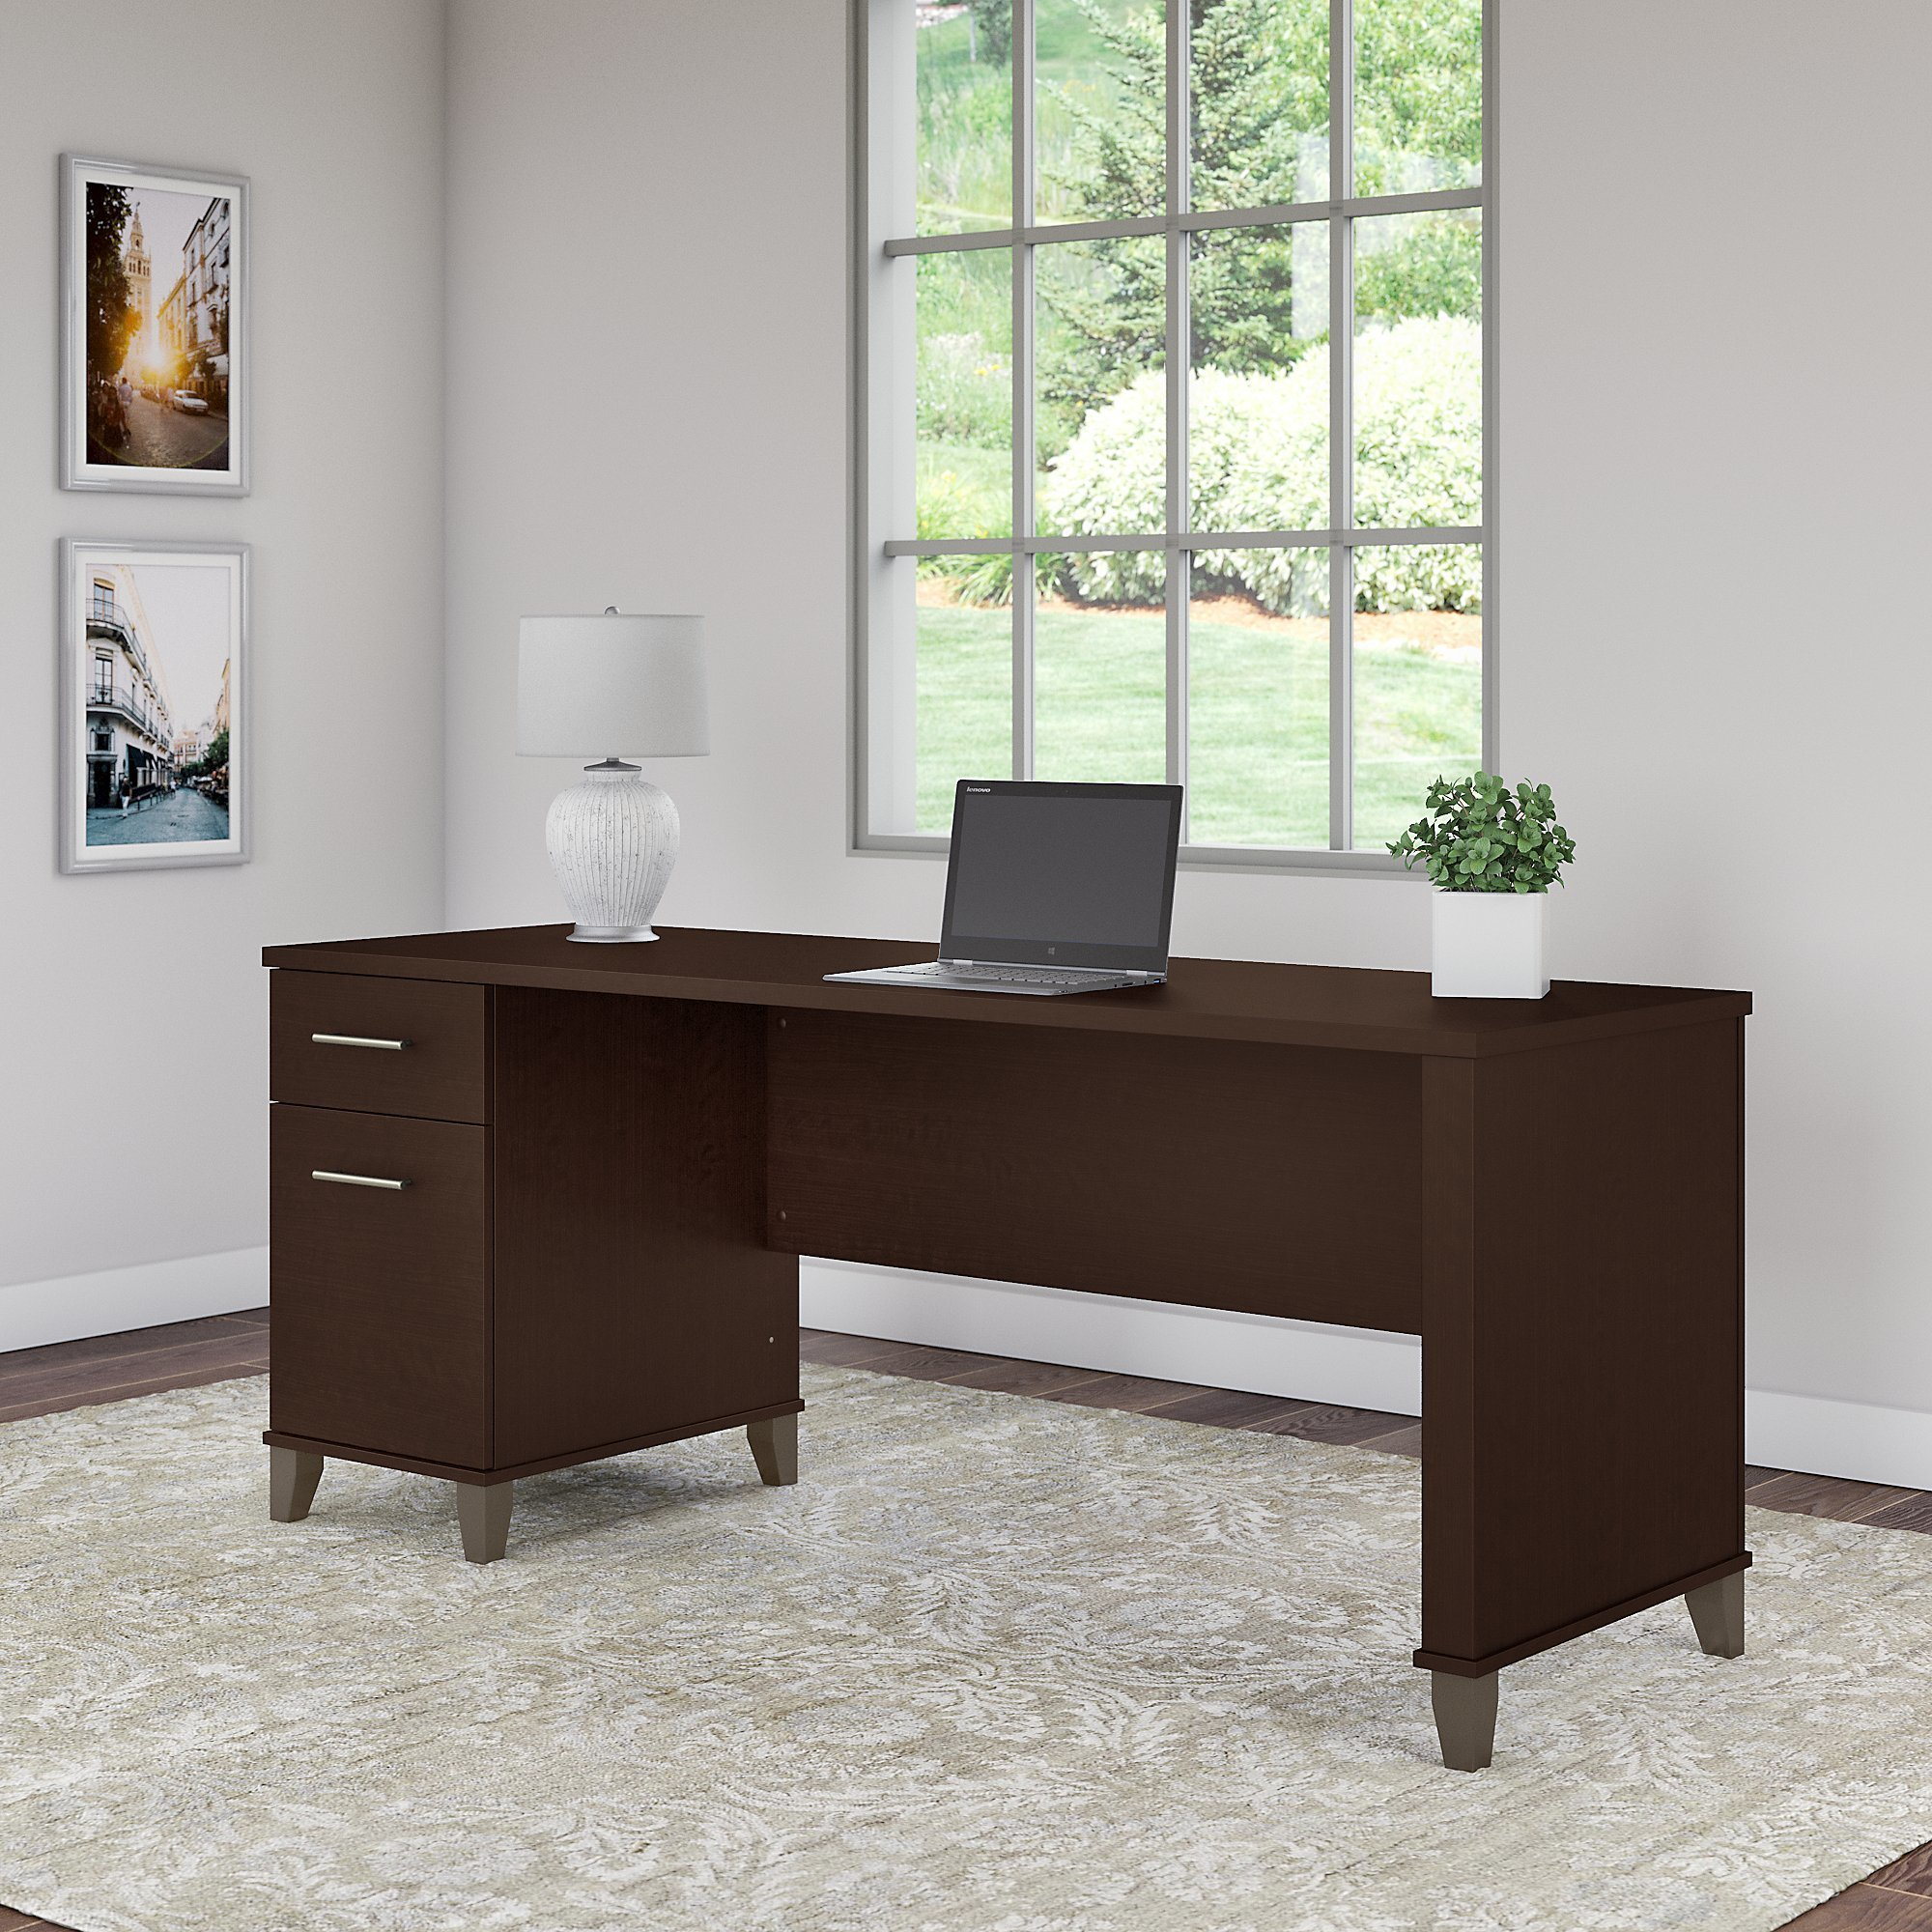 Amazing Copper Grove Shumen 72 Inch Office Desk With Drawers In Cherry Download Free Architecture Designs Scobabritishbridgeorg